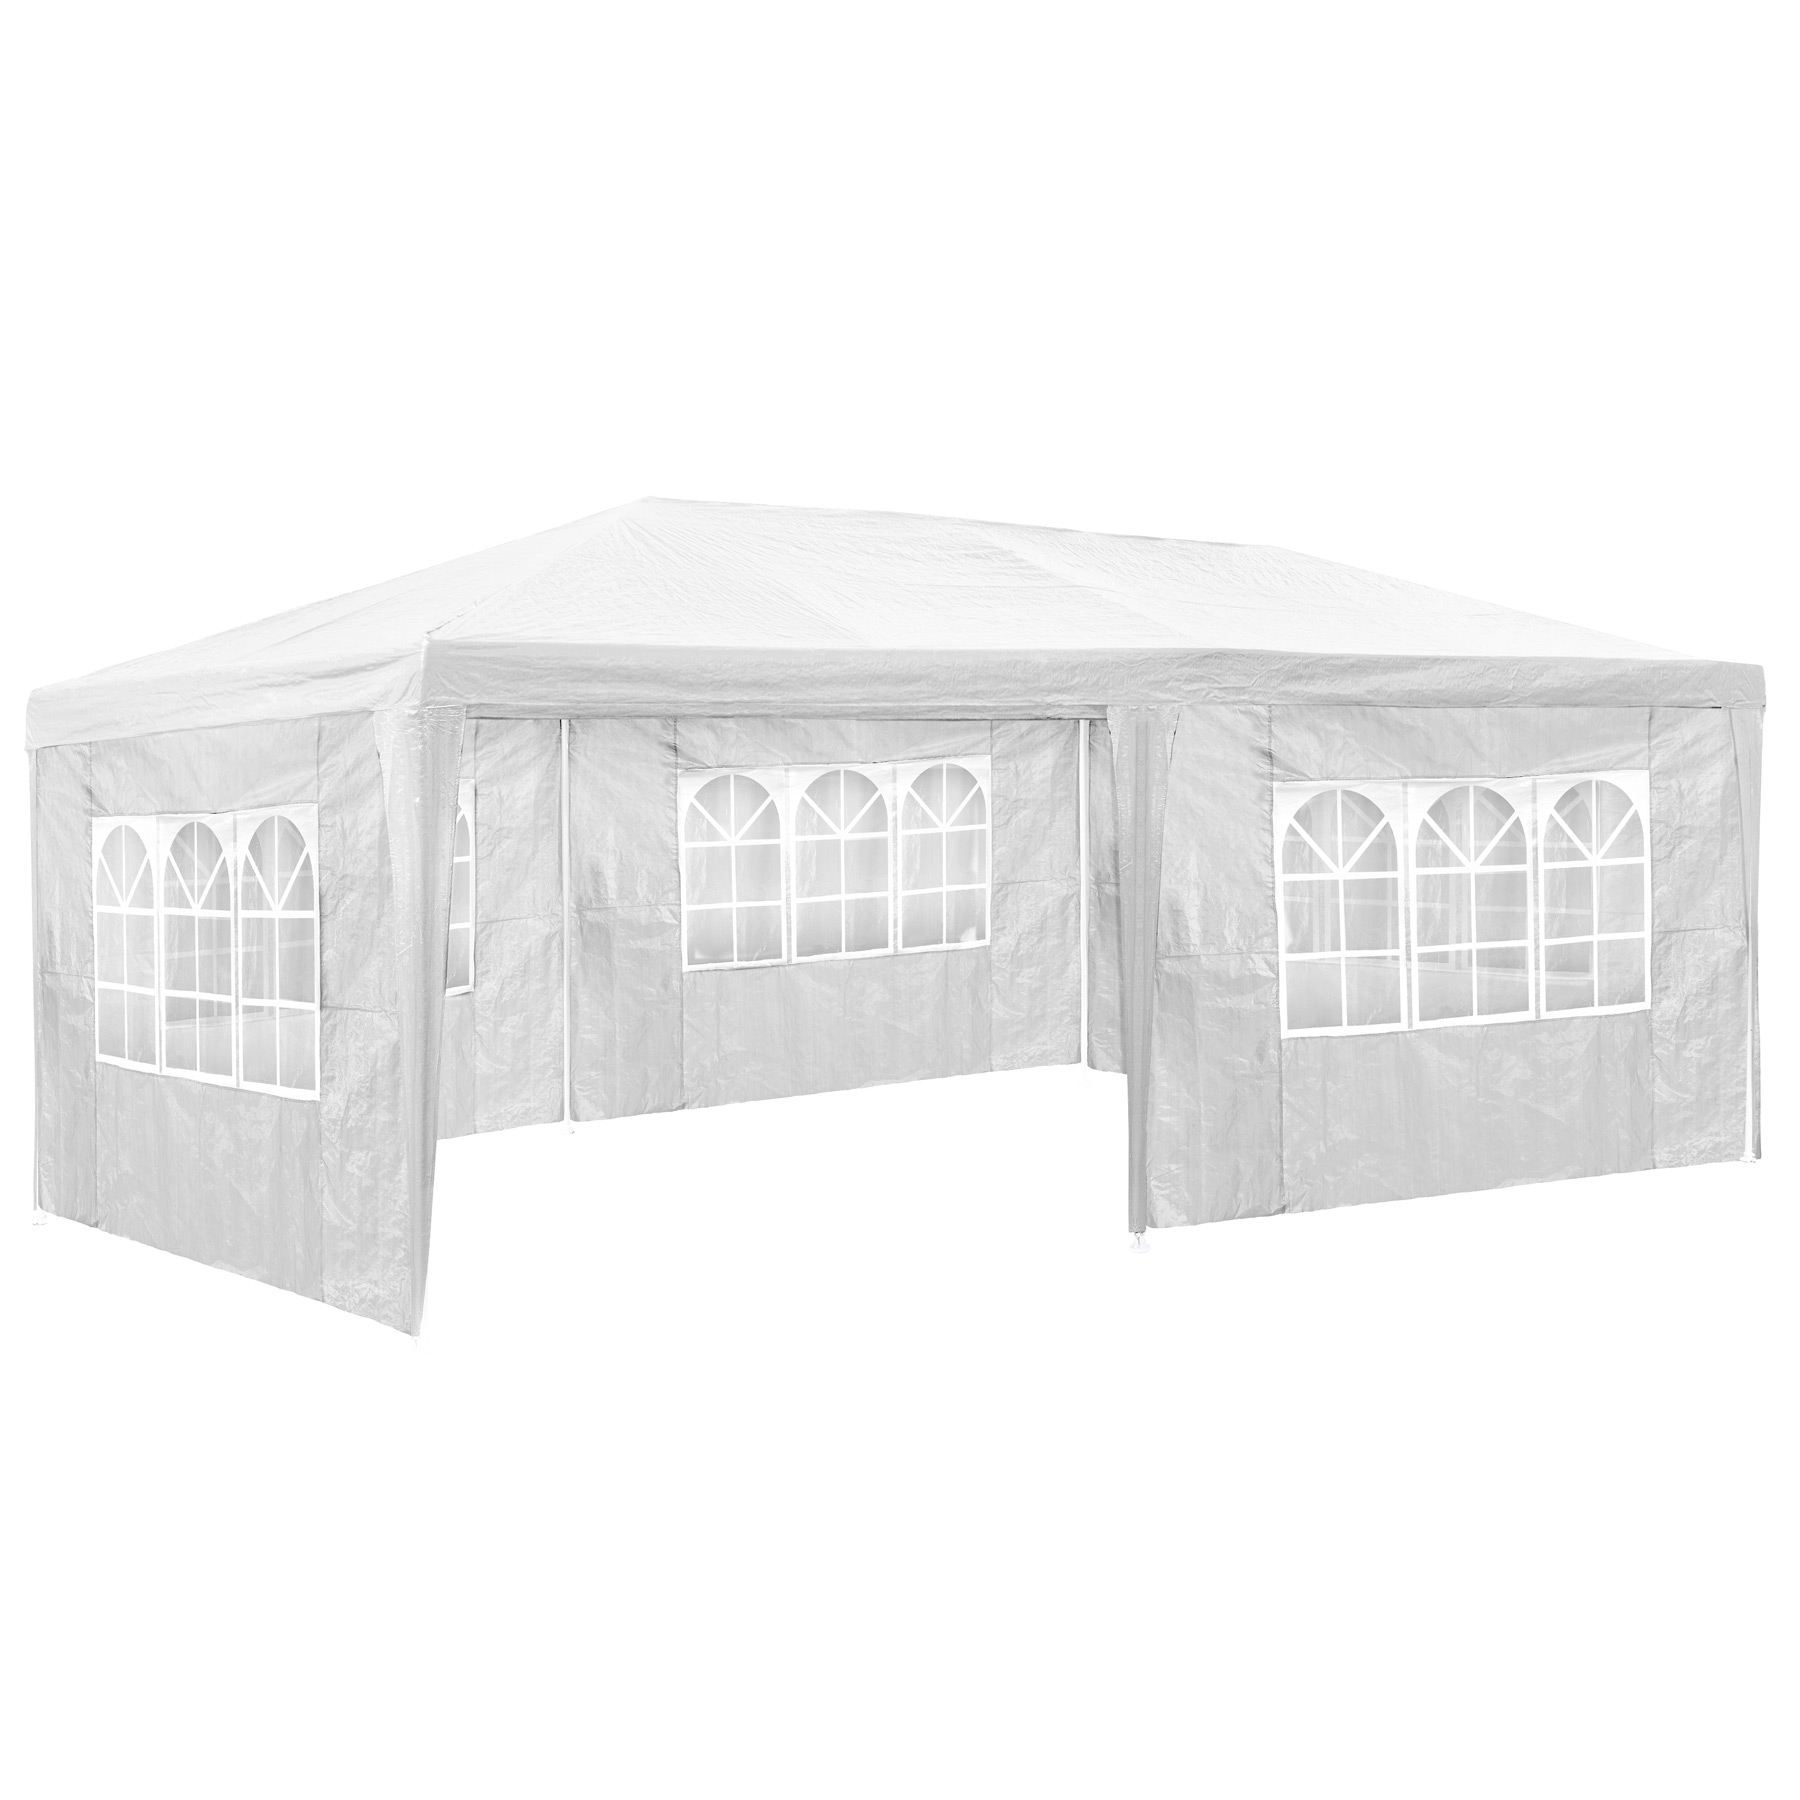 pavillon 3x6m wei partyzelt gartenzelt festzelt zelt. Black Bedroom Furniture Sets. Home Design Ideas